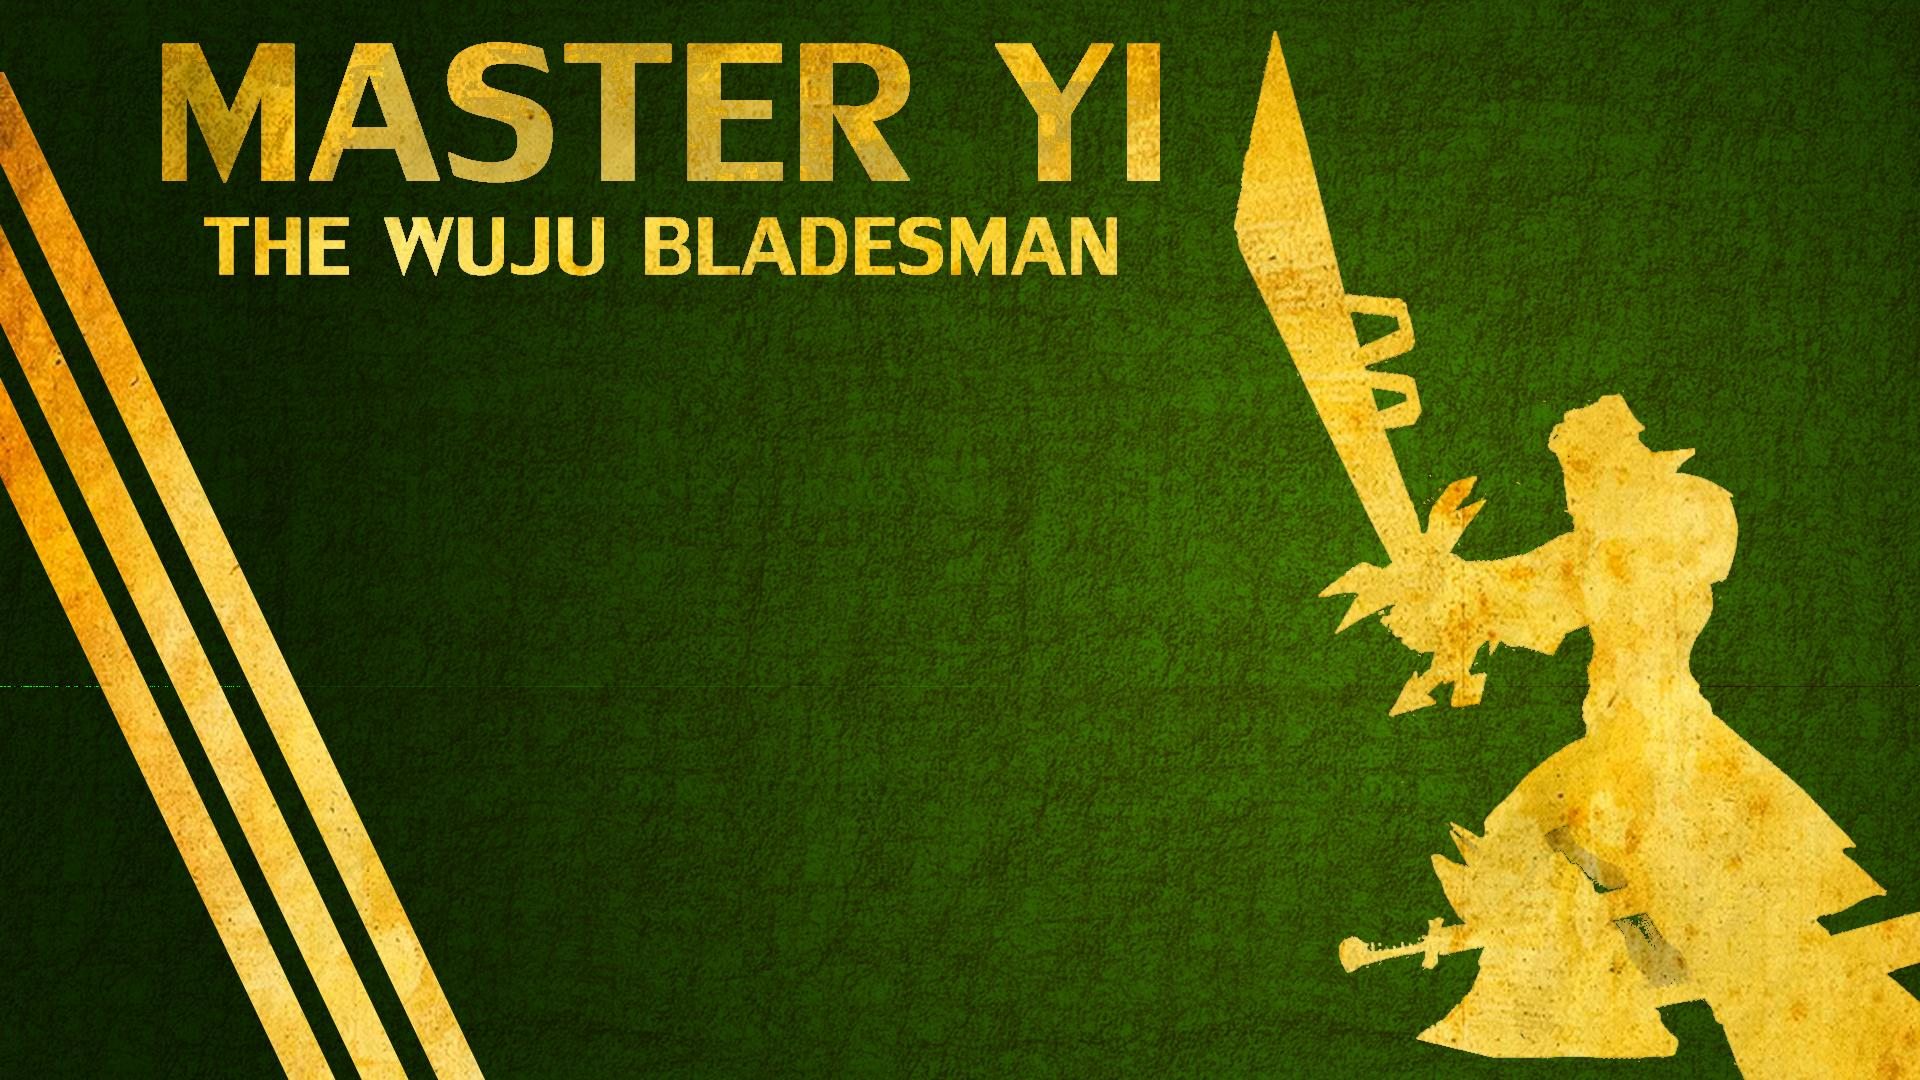 master yi vs yasuo - photo #38